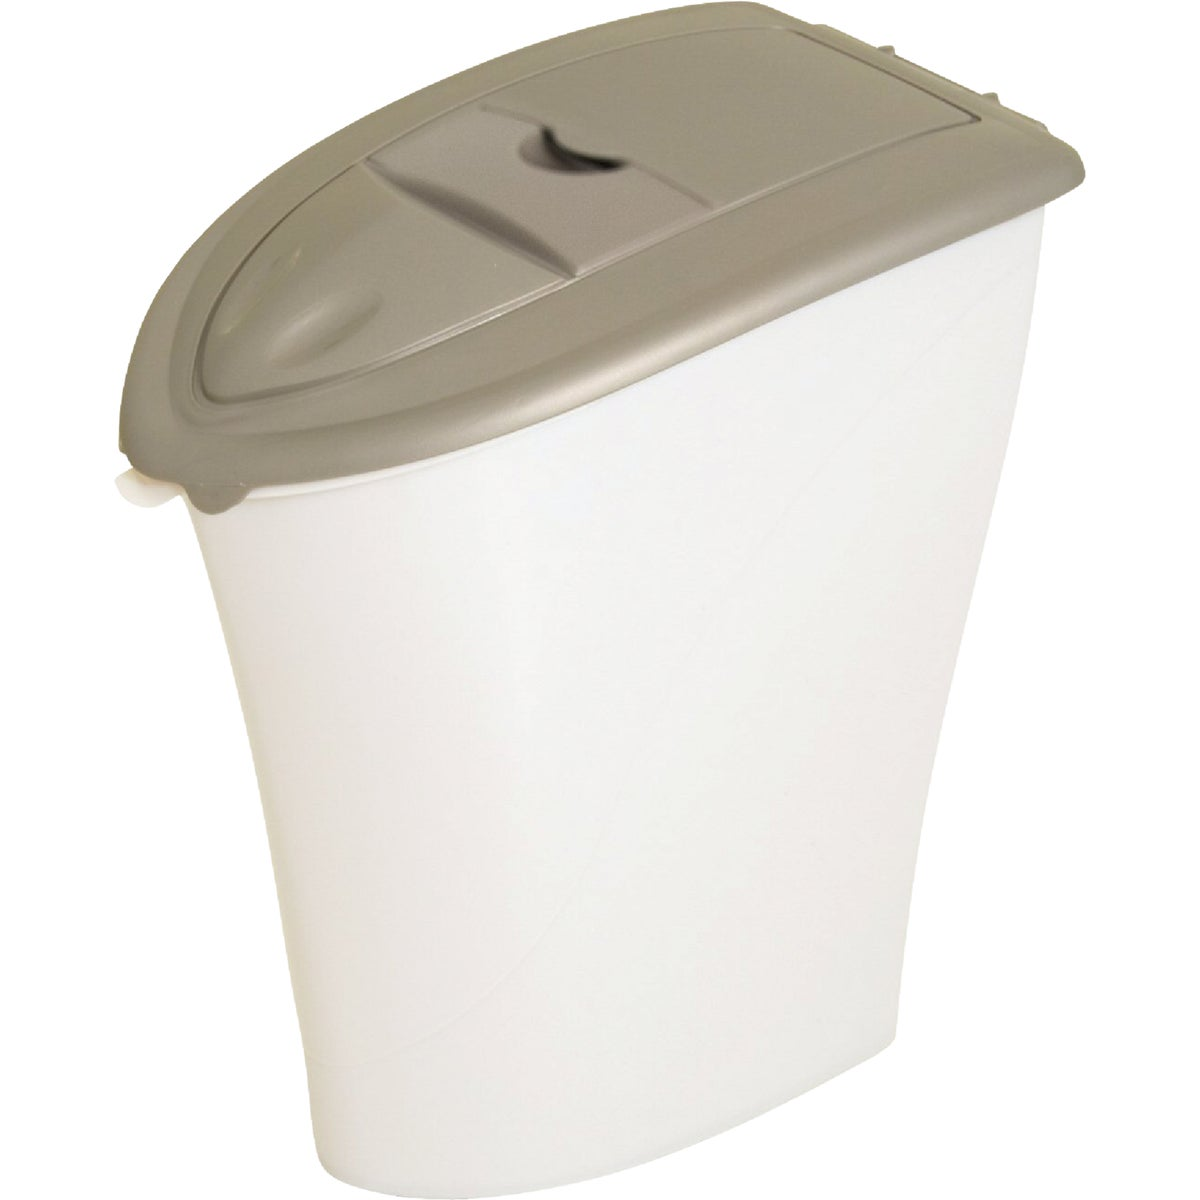 40LB PET FOOD BIN - 24482 by Petmate Doskocil